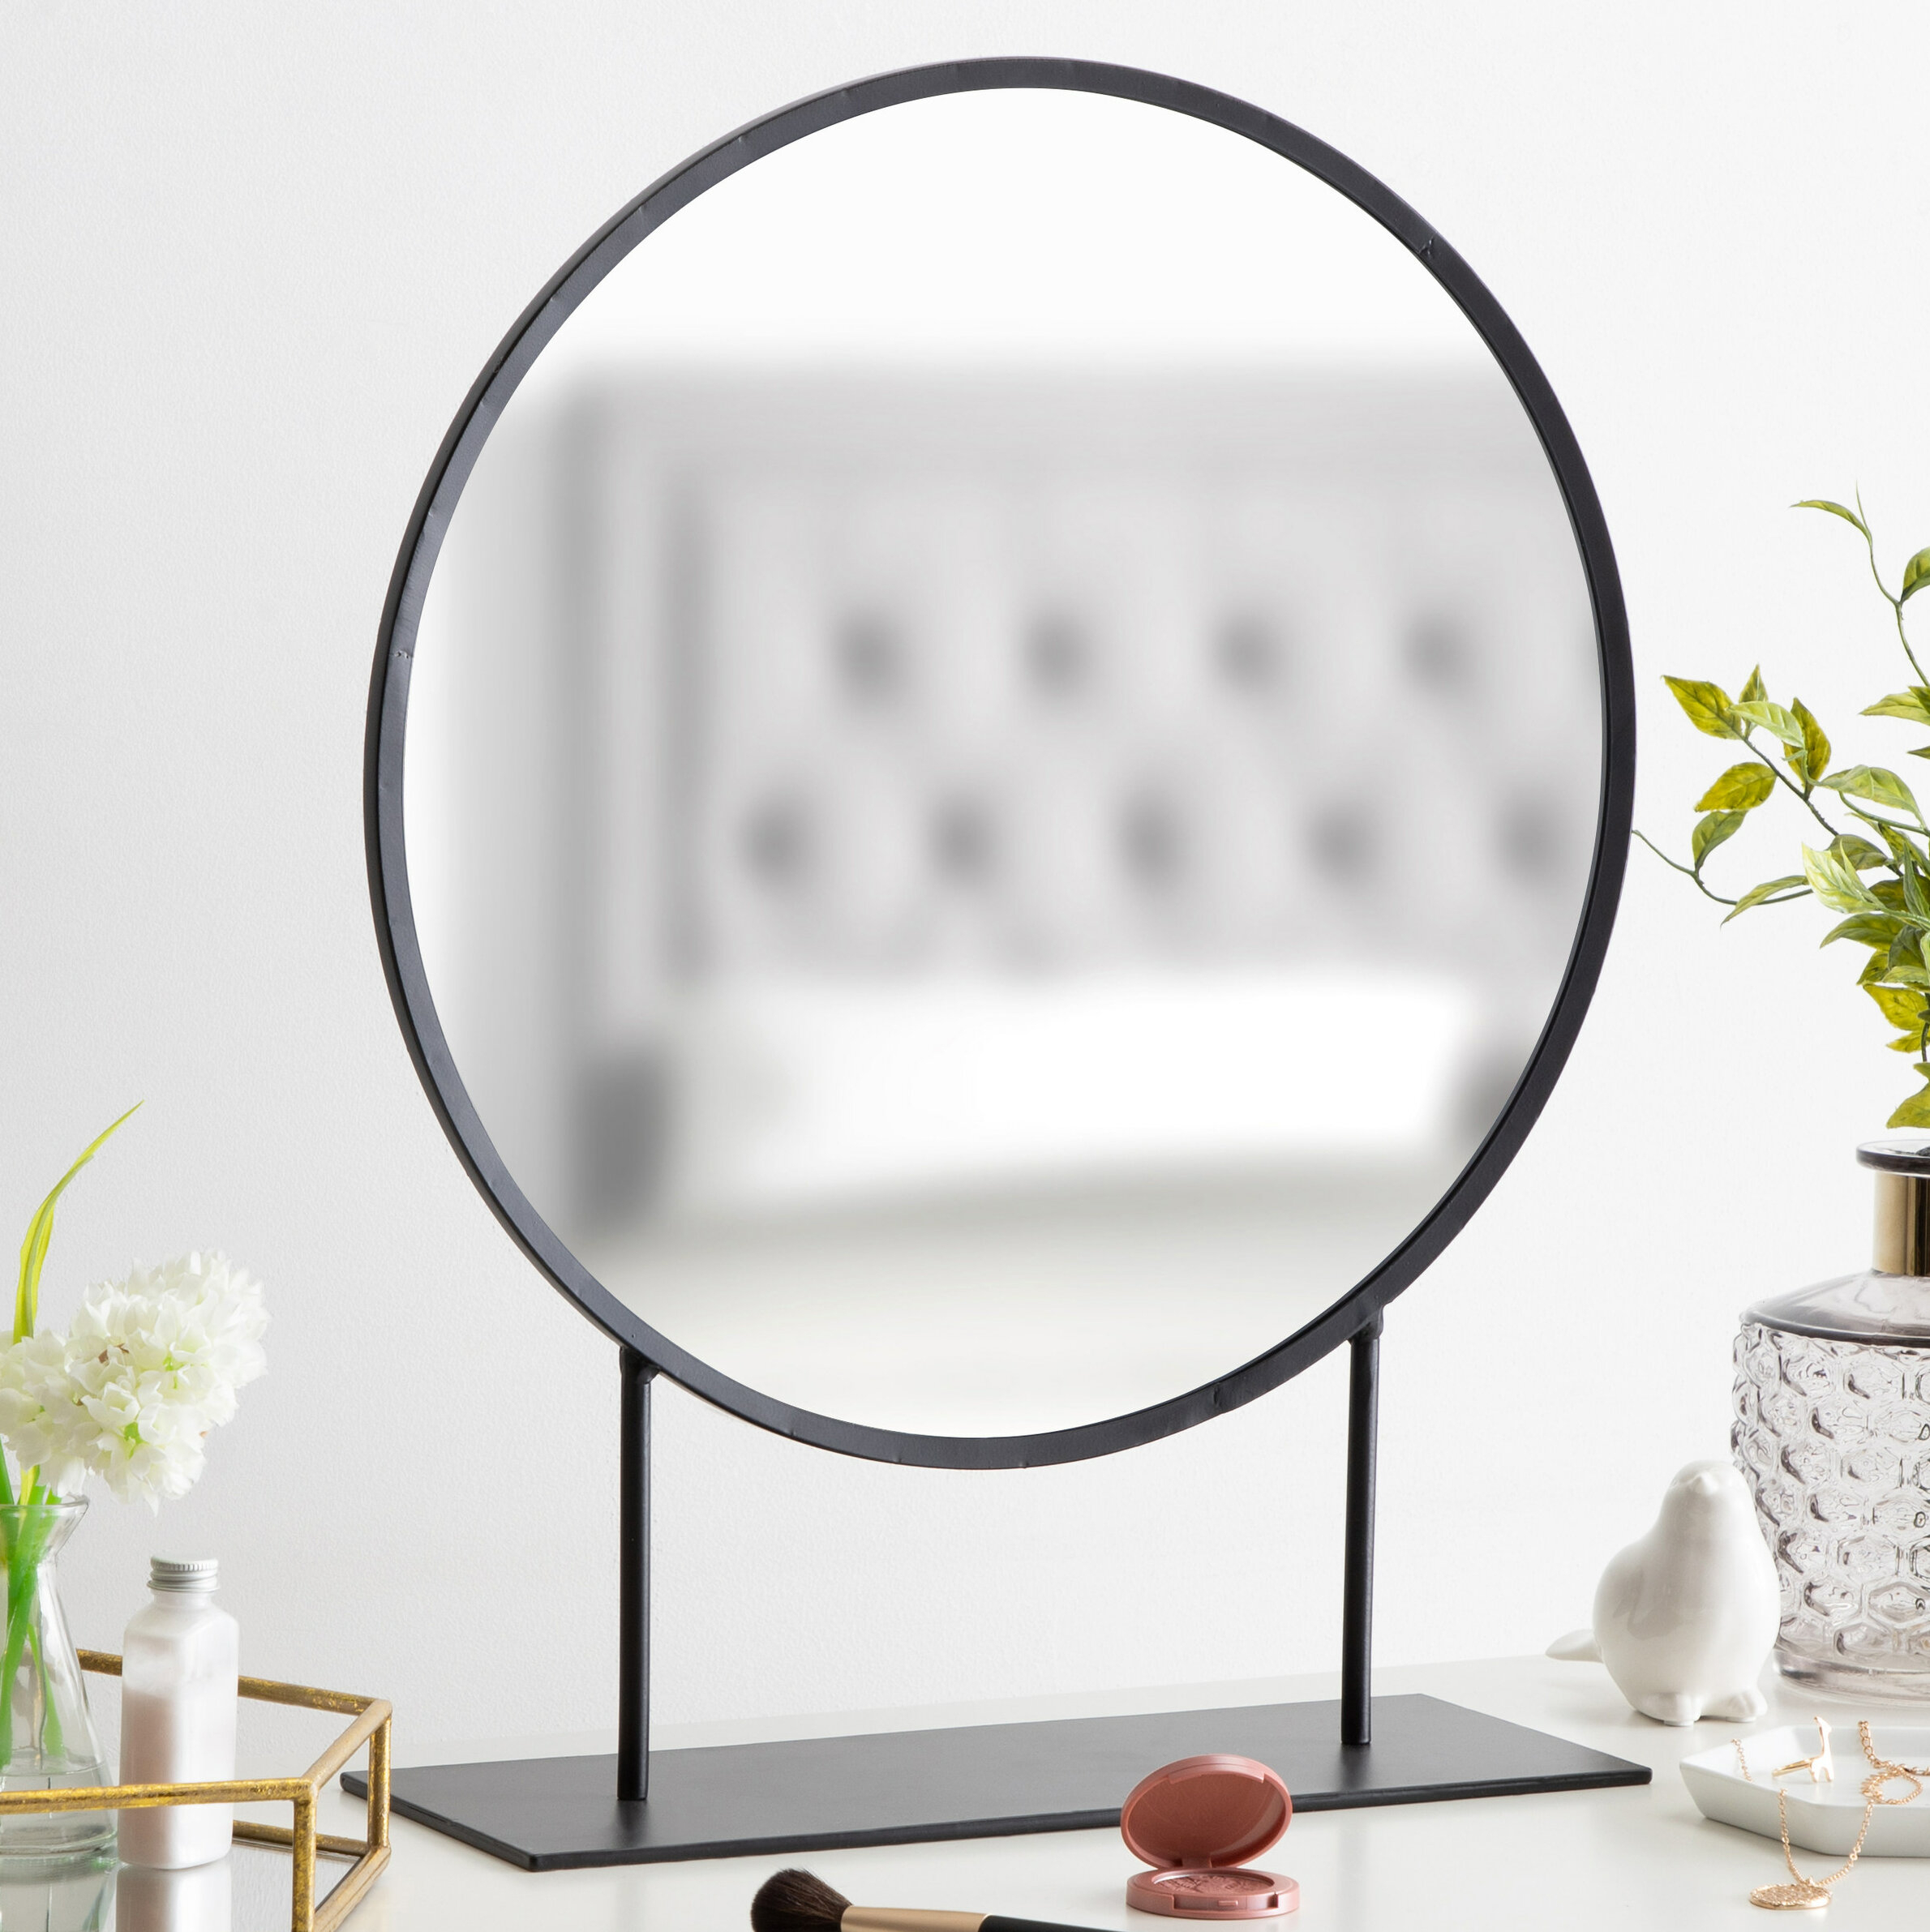 Loftin Modern Glam Round Beveled Accent Mirror Intended For Arrigo Accent Mirrors (View 11 of 20)